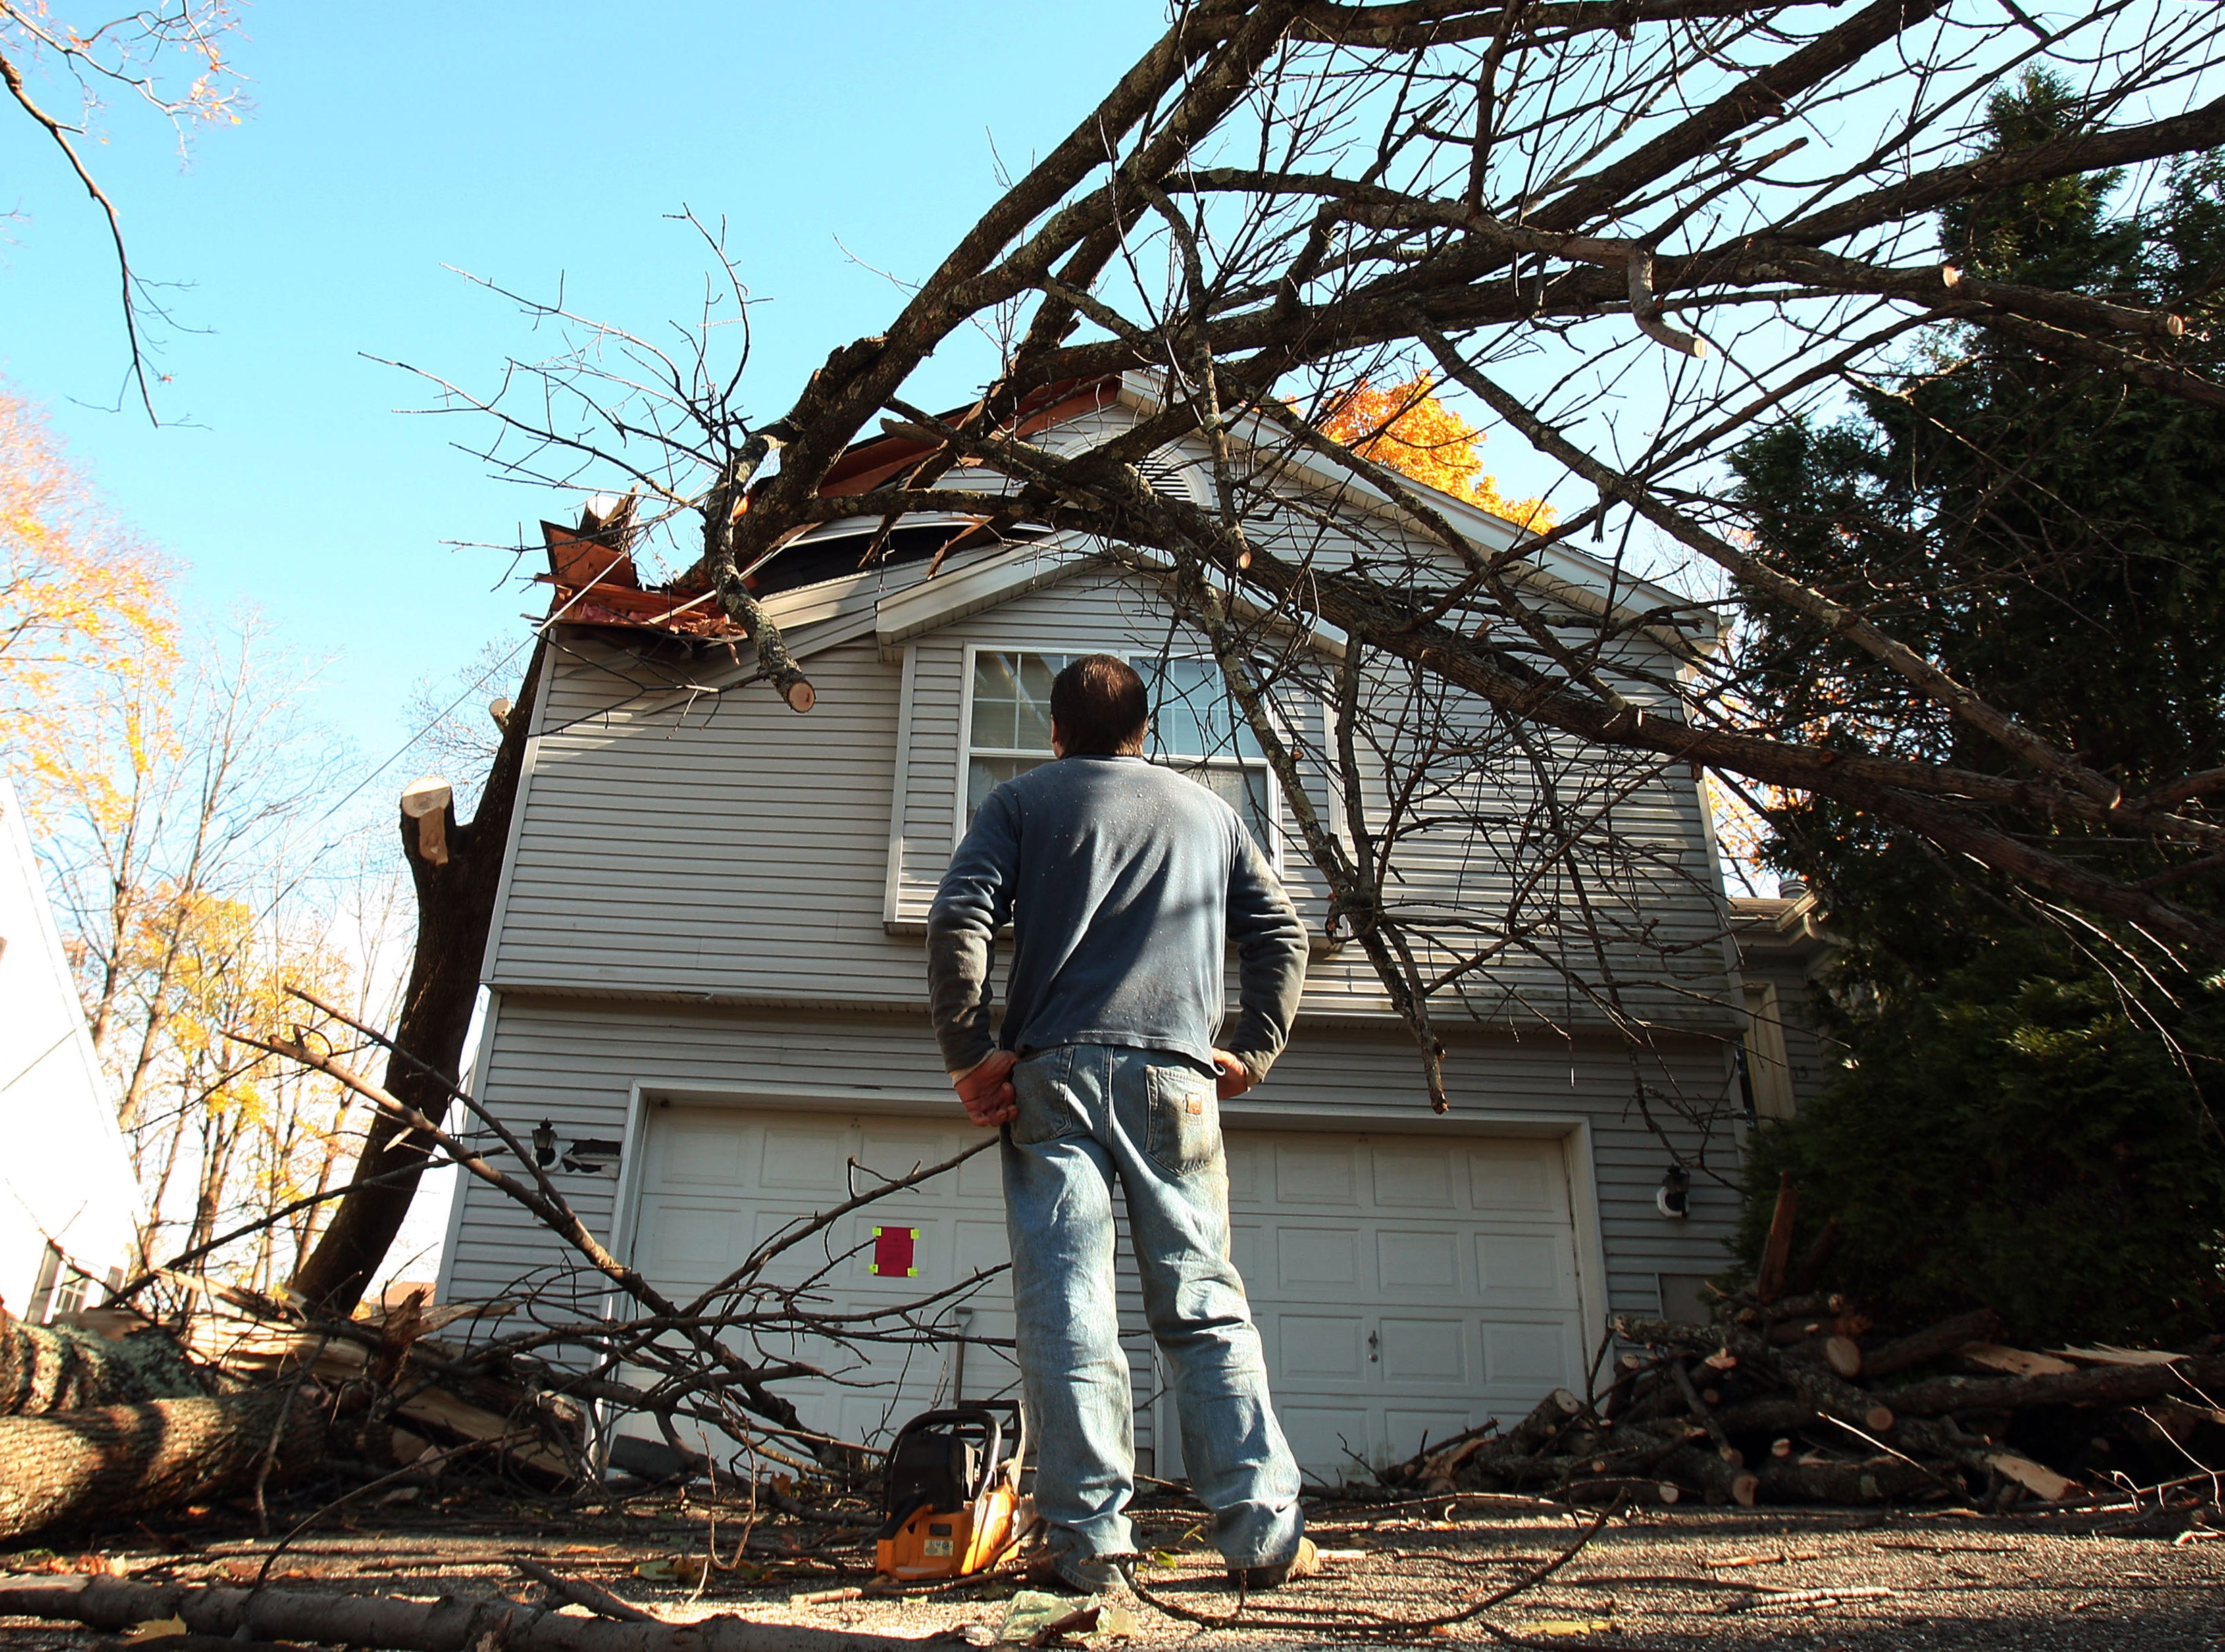 Morristown, N.J.- November 5, 2012-- Joe Esposito of HLM Designs in Randolph, NJ sizes up a large tree that destroyed part of a Morristown homeowners roof during Hurricane Sandy.